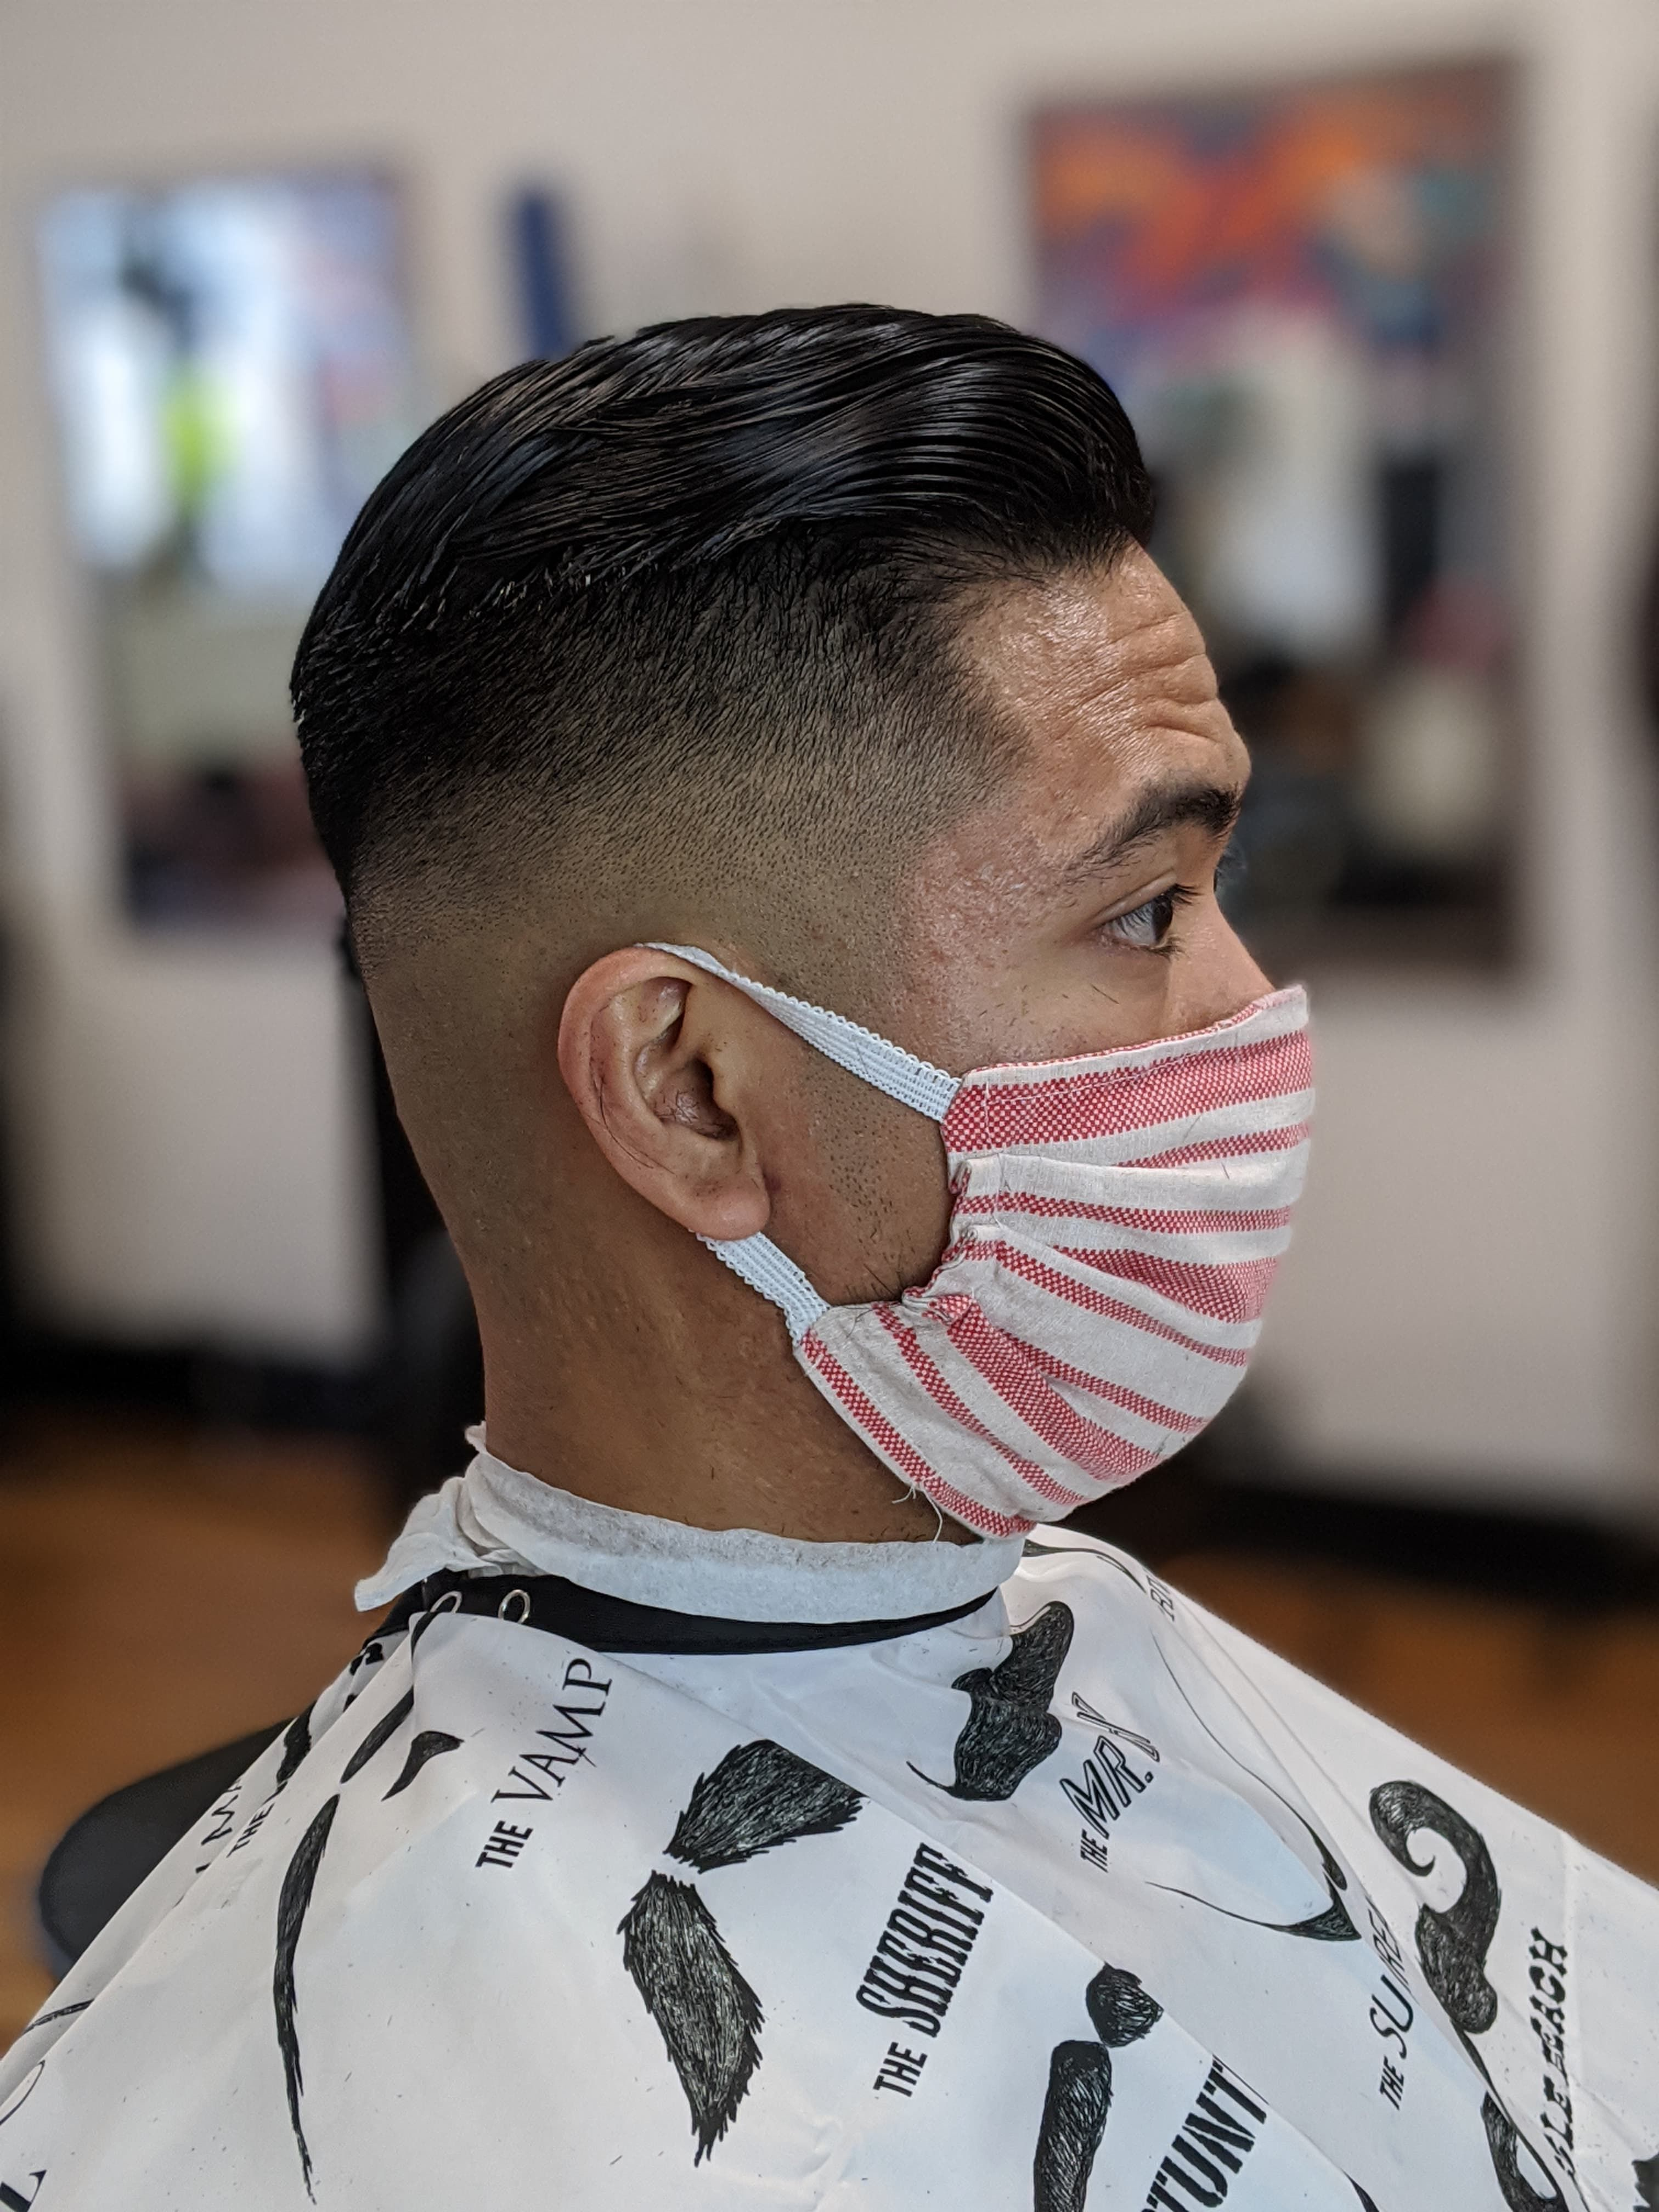 Men S Styled Look Fresh Professional Look Chicago Barber Services House Calls For Beard Hair In 2020 Hair And Beard Styles Cool Mens Haircuts Haircuts For Men